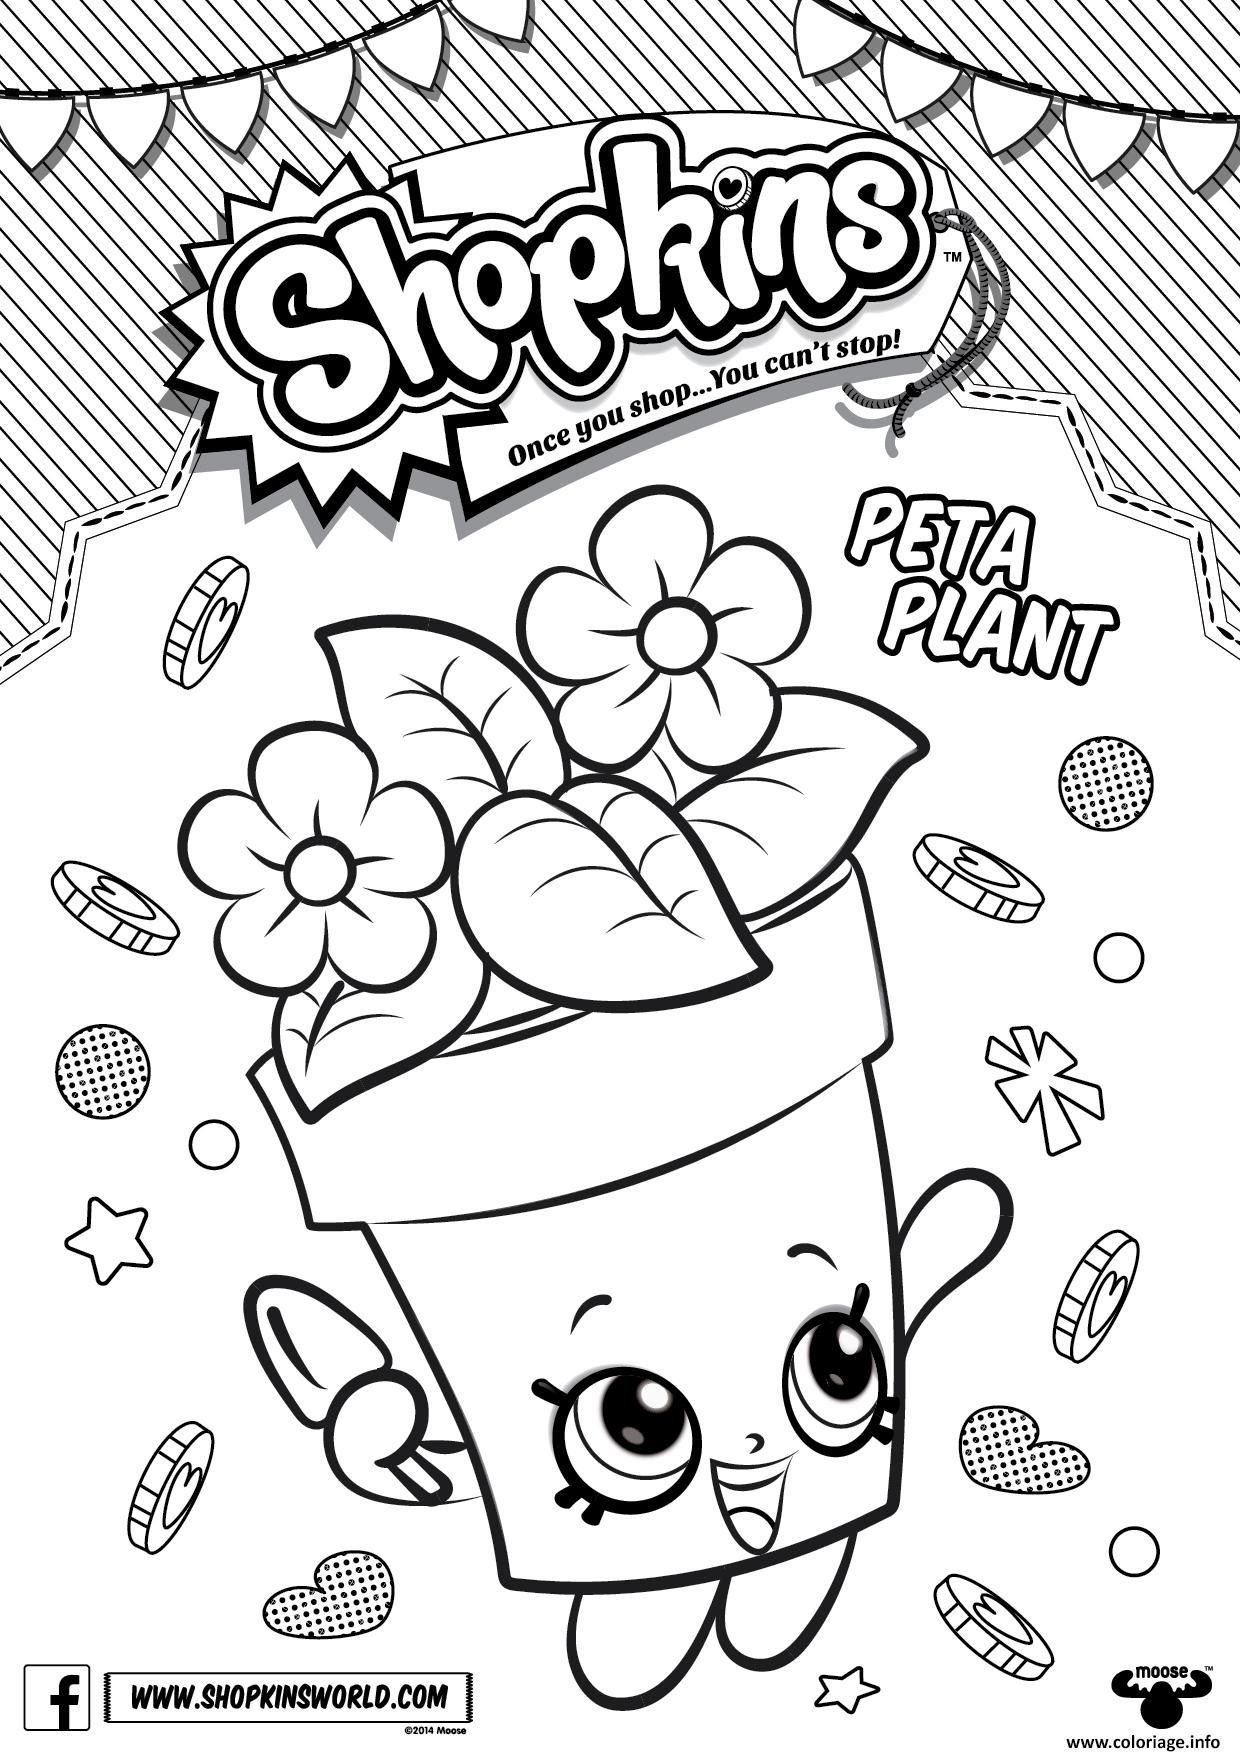 Coloriage shopkins peta plant dessin imprimer for Lipstick shopkins coloring page